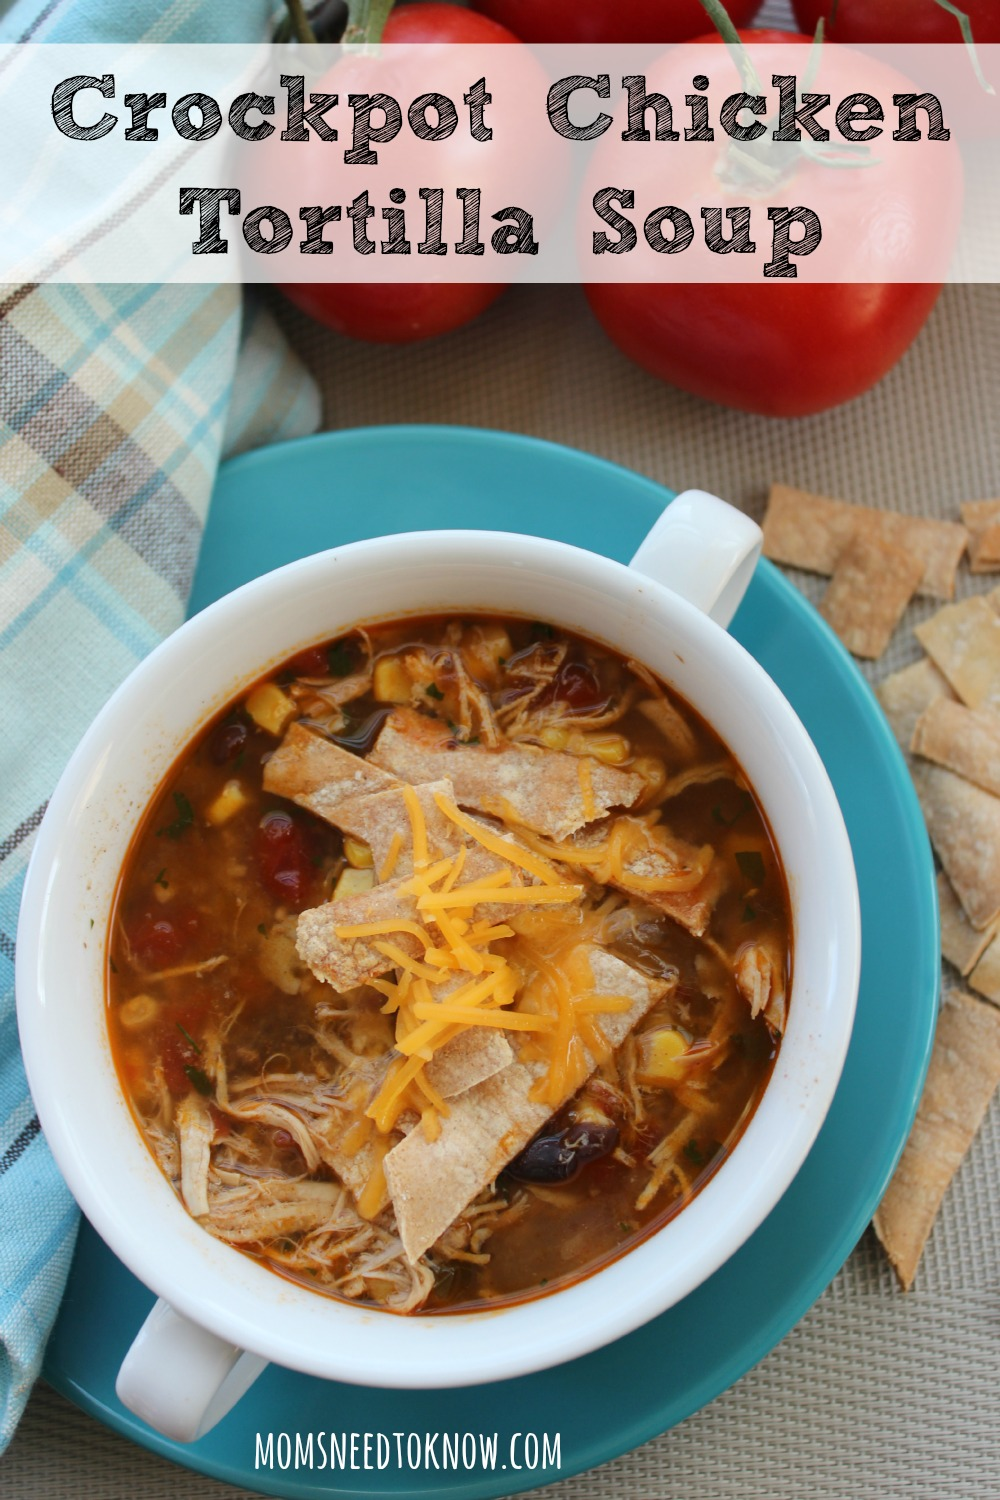 If you are looking for some easy chicken recipes, you need to try my crockpot chicken tortilla soup as well as a few others that I have listed!